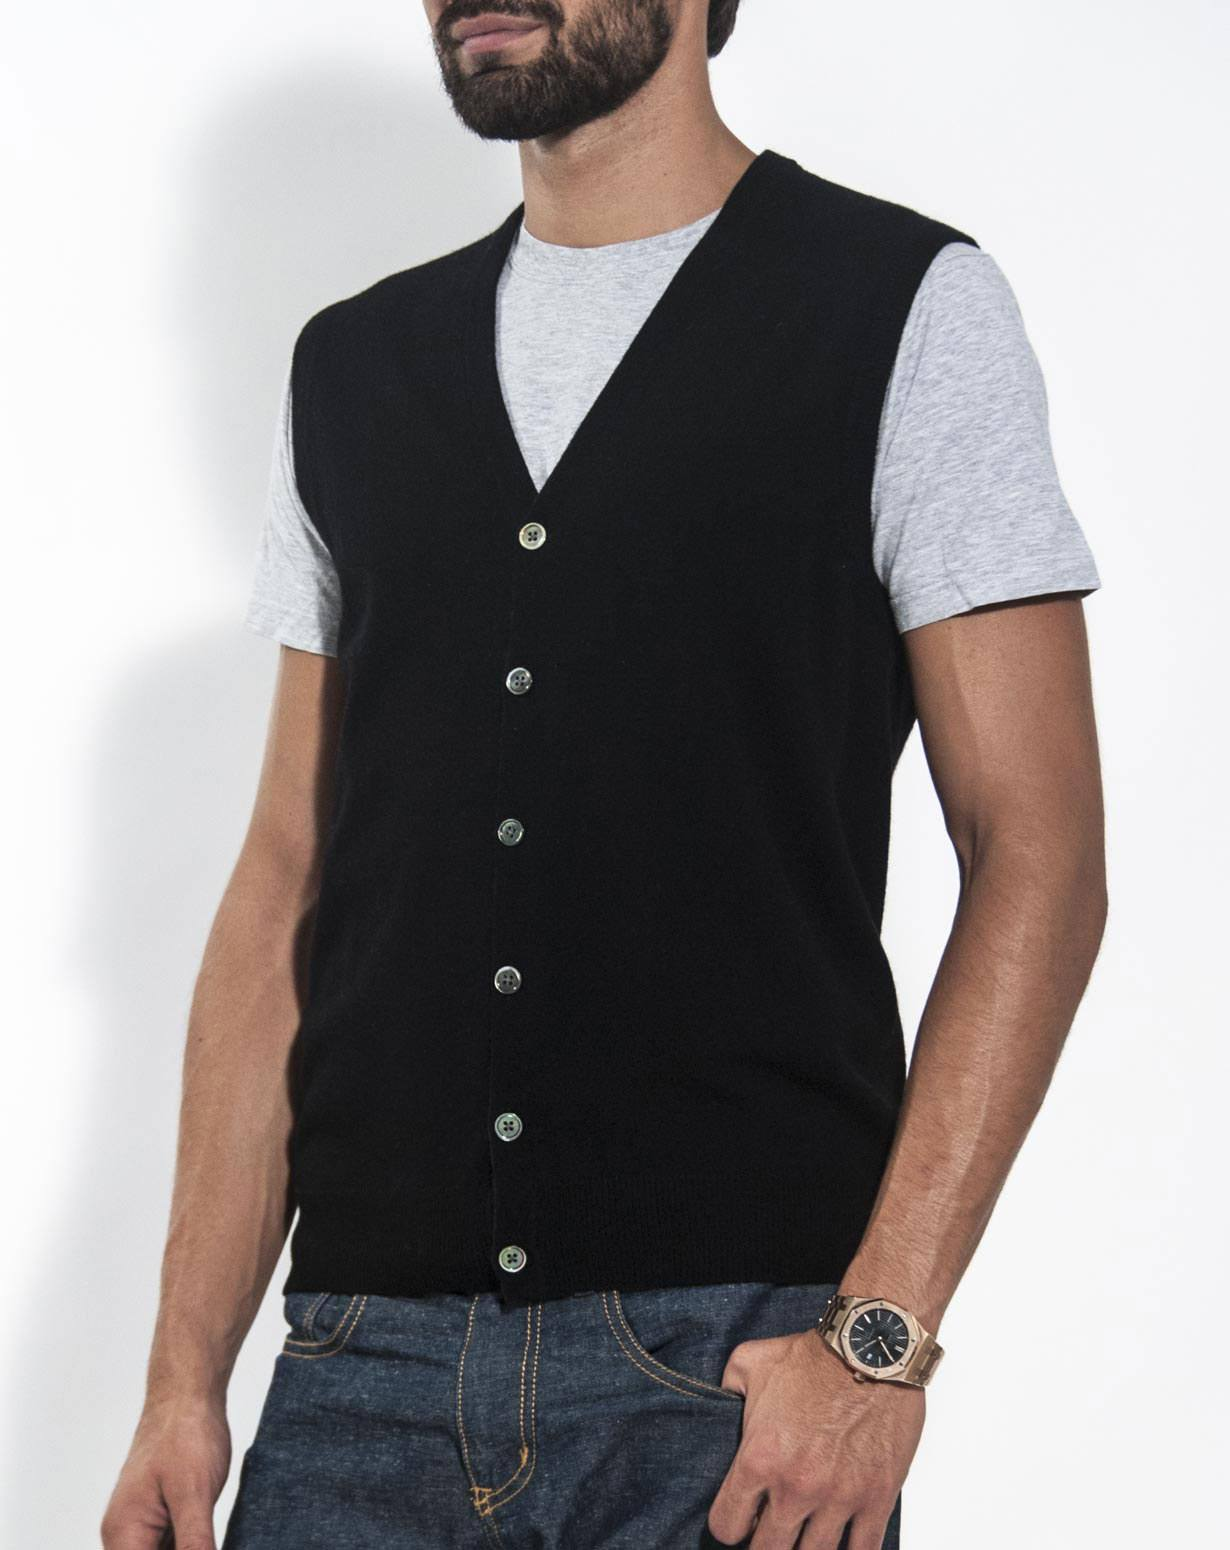 Men's Pure Cashmere Sleeveless Cardigan